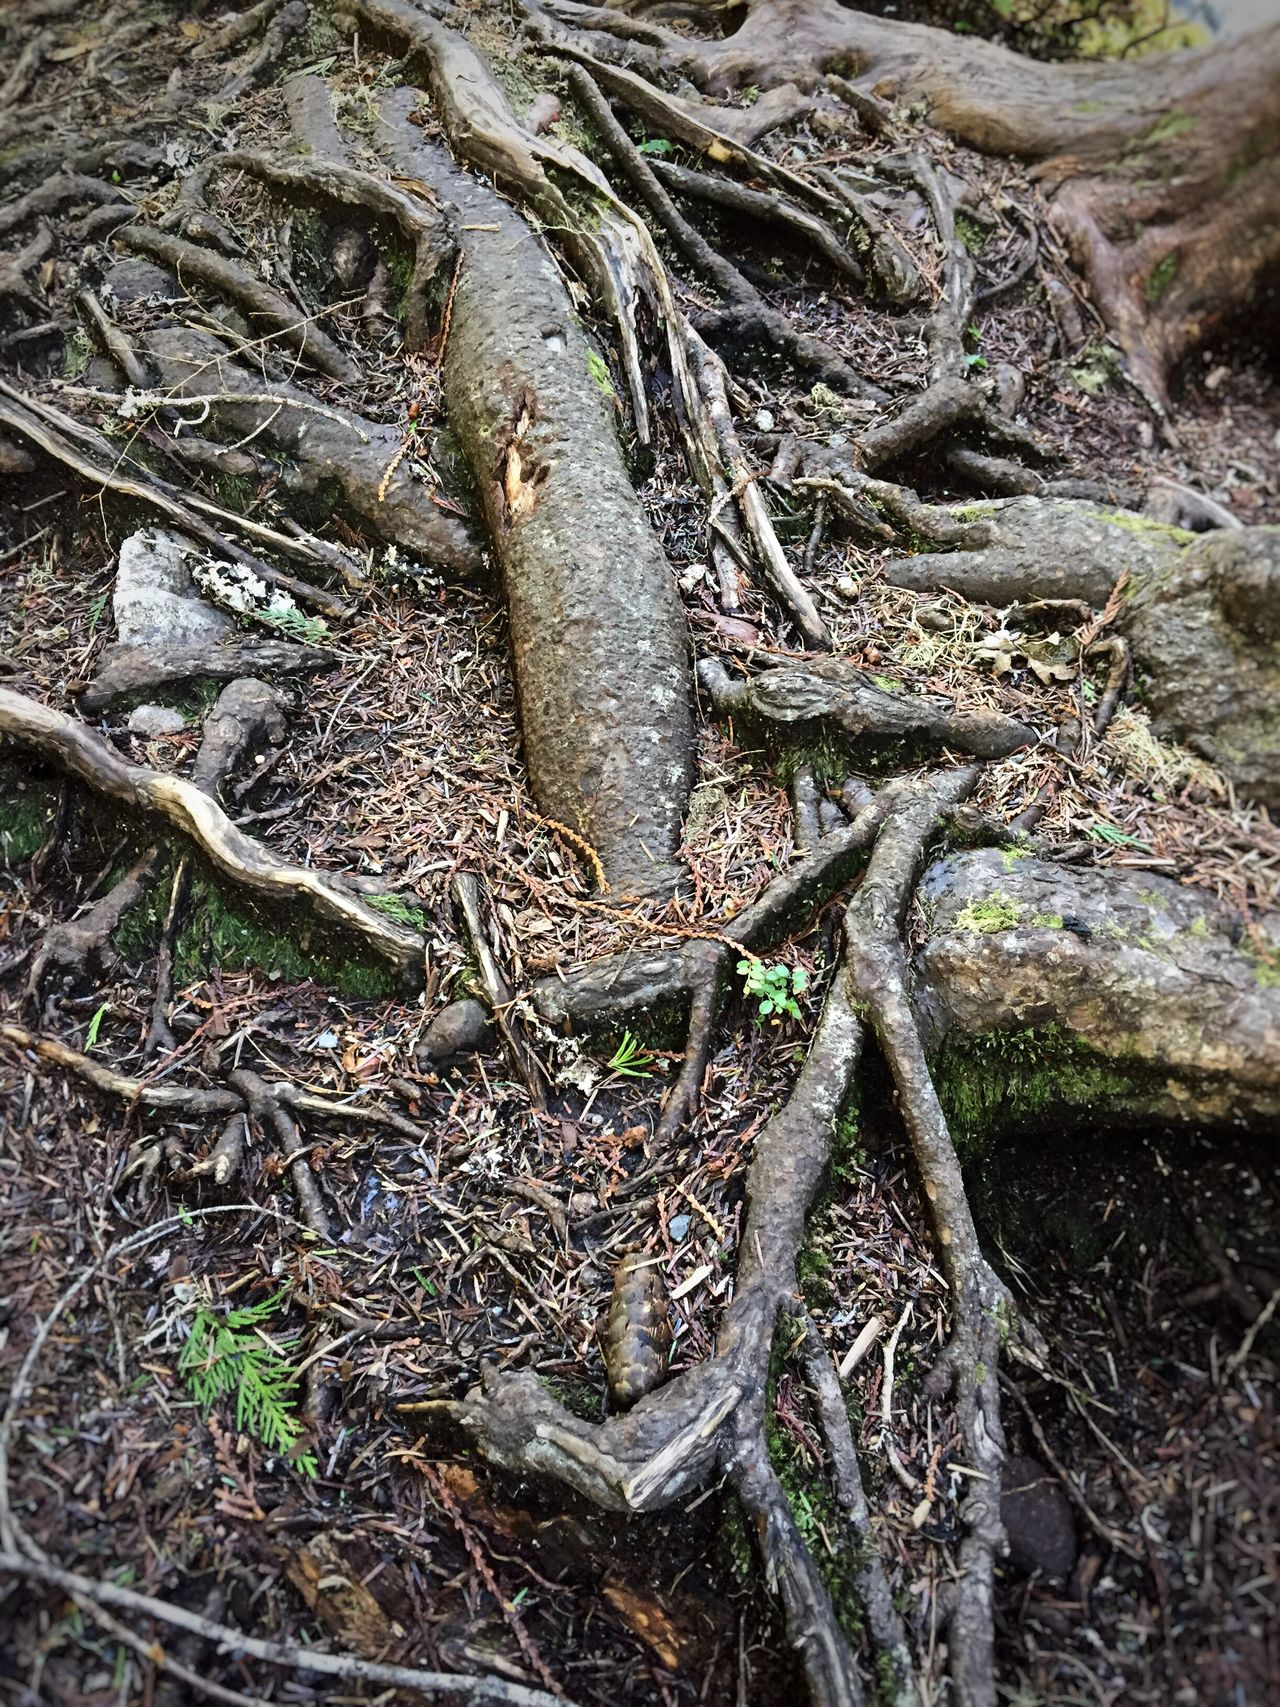 Faces In Nature Faces In Places Faces Of The World I See Faces Outdoors Nature Tree Forest Roots Versions